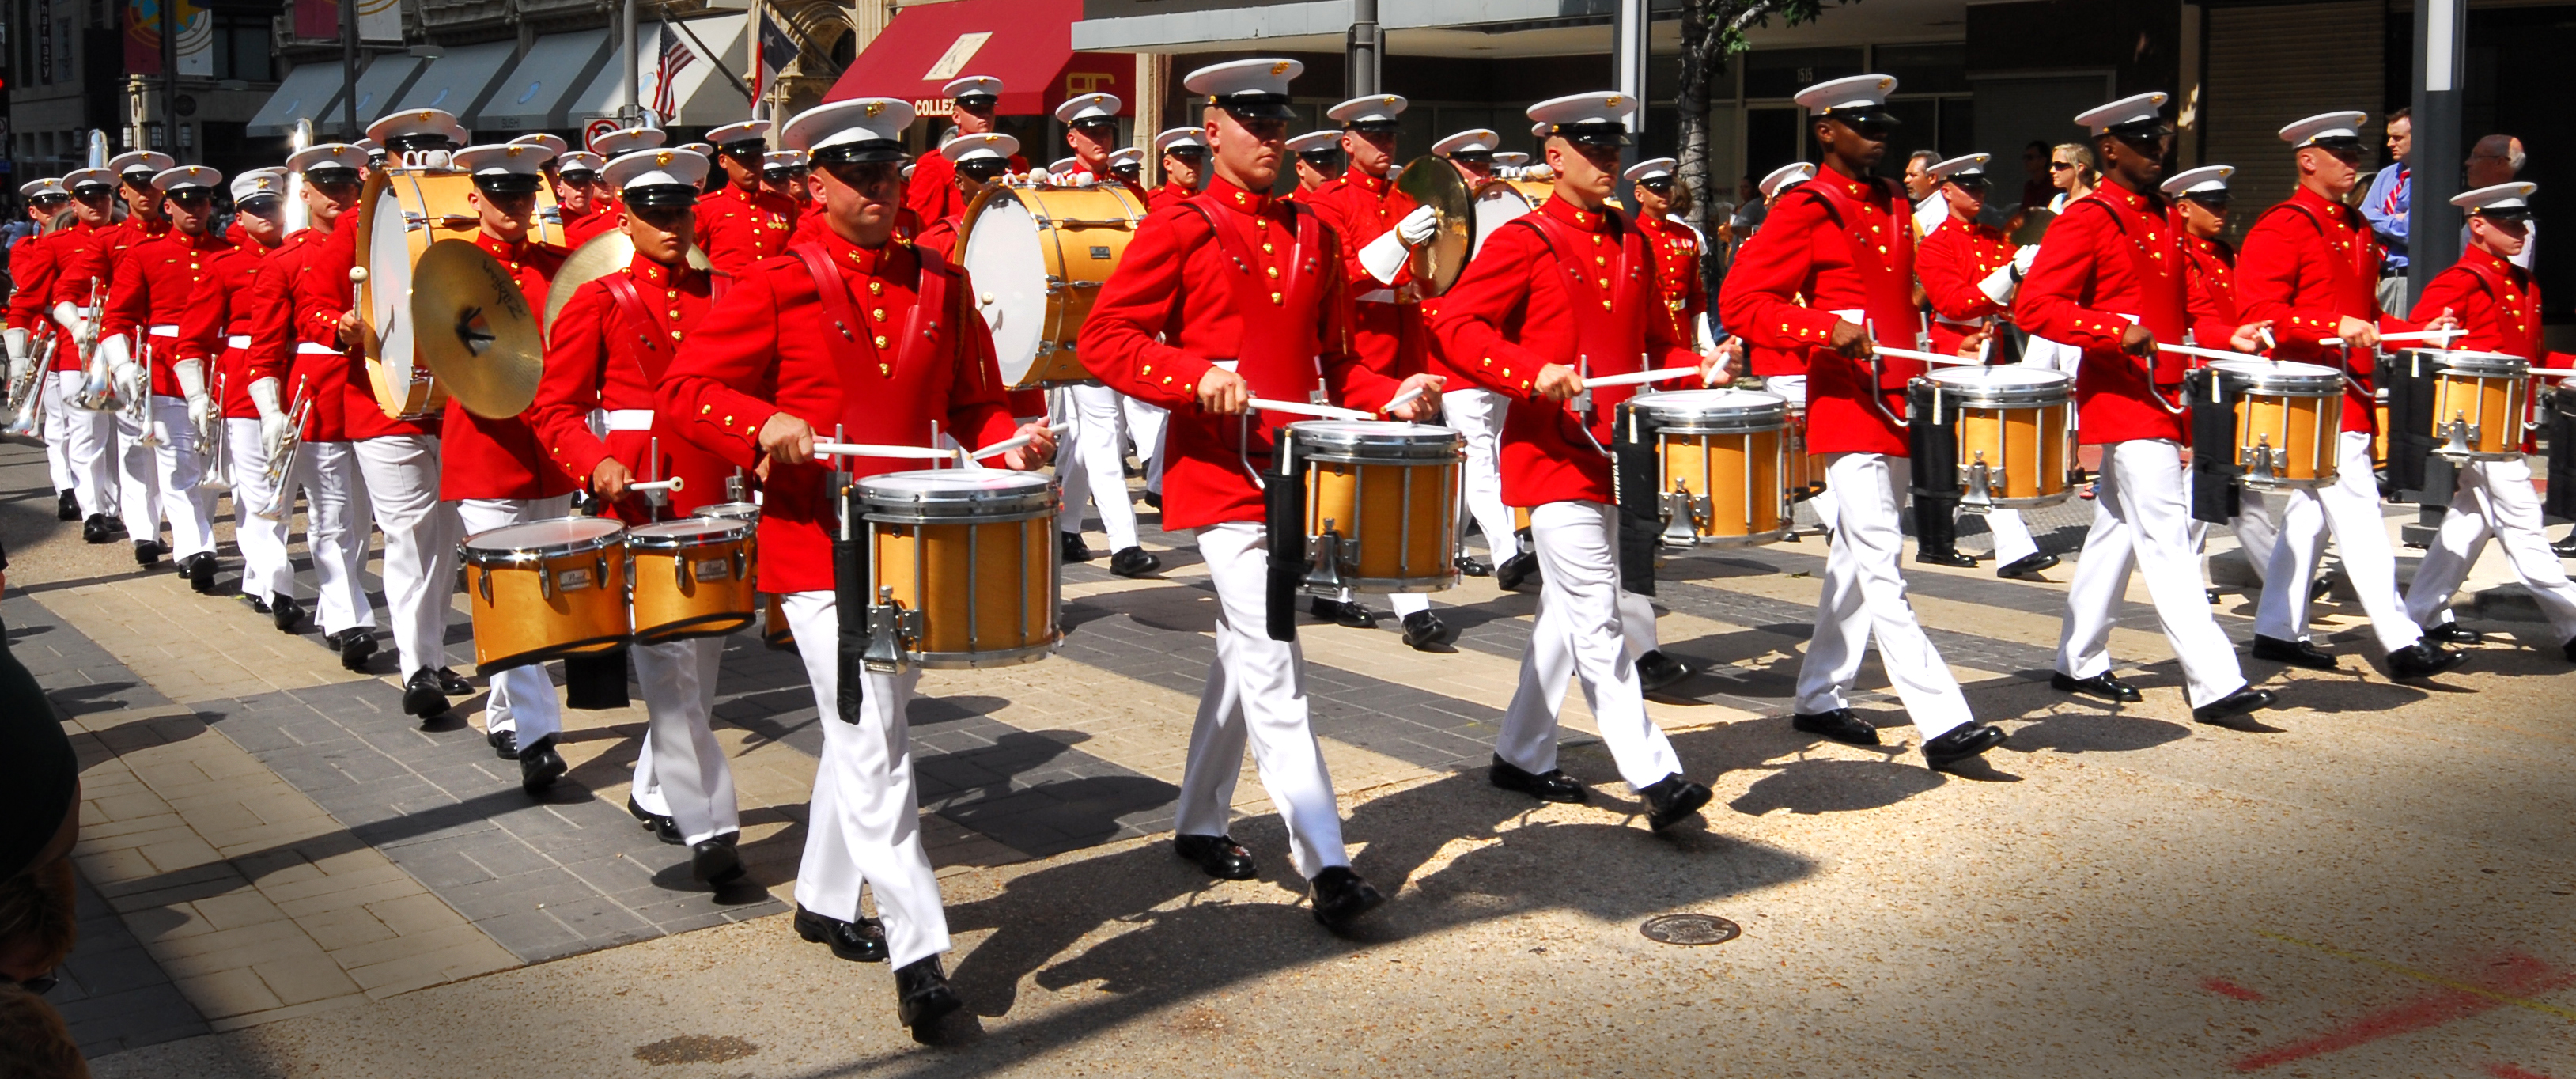 file marching band drummers in parade at texas state fair state of texas clip art vector state of texas clip art pdf